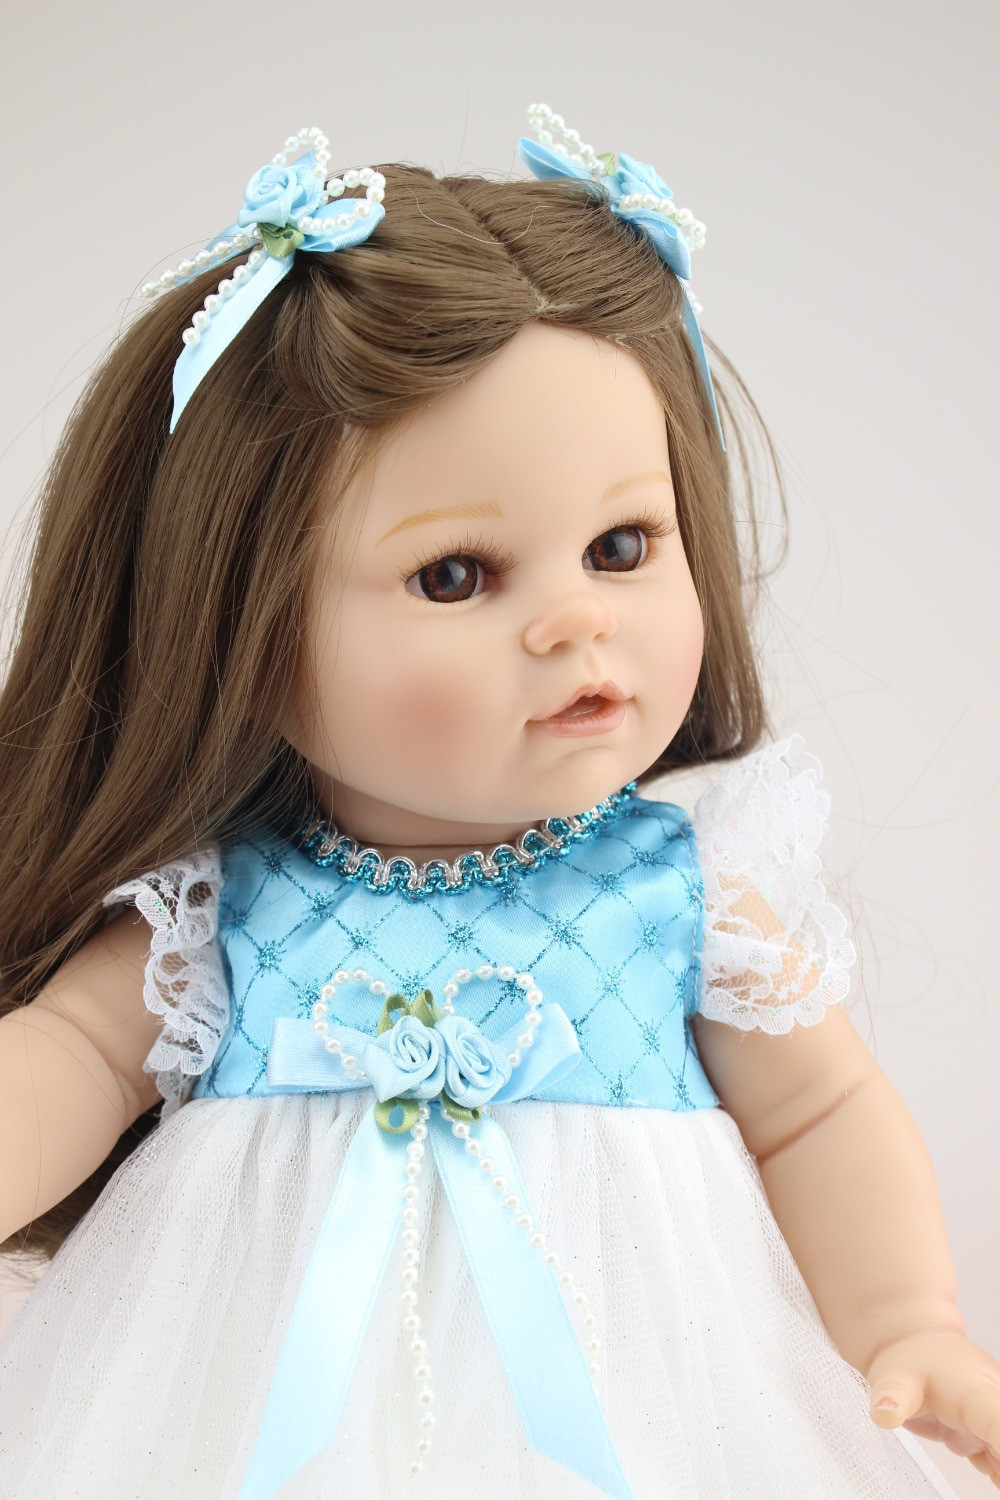 Baby Doll With Long Hair  Brown long straight hair GIRL Dolls 16 Reborn Baby dolls